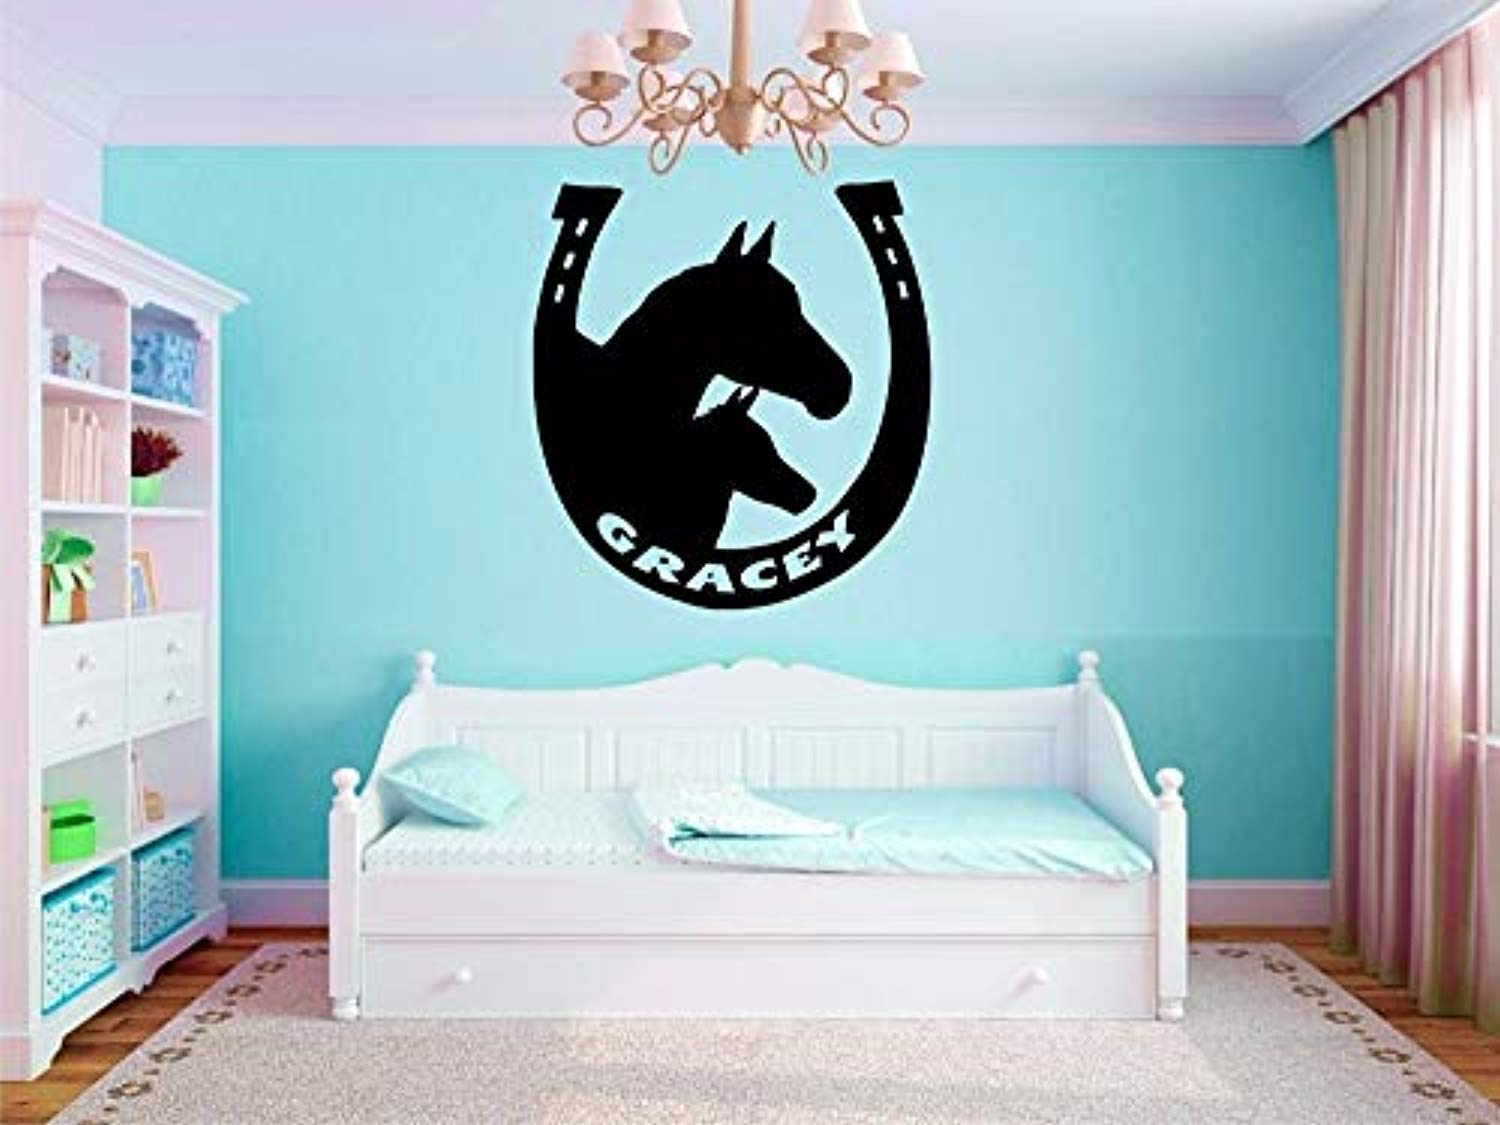 Custom Made Personalized Name Horseshoe with Horse Kids Nursery Bedroom You Wall Decals Decor Vinyl Sticker SK13698 (w22 h23)